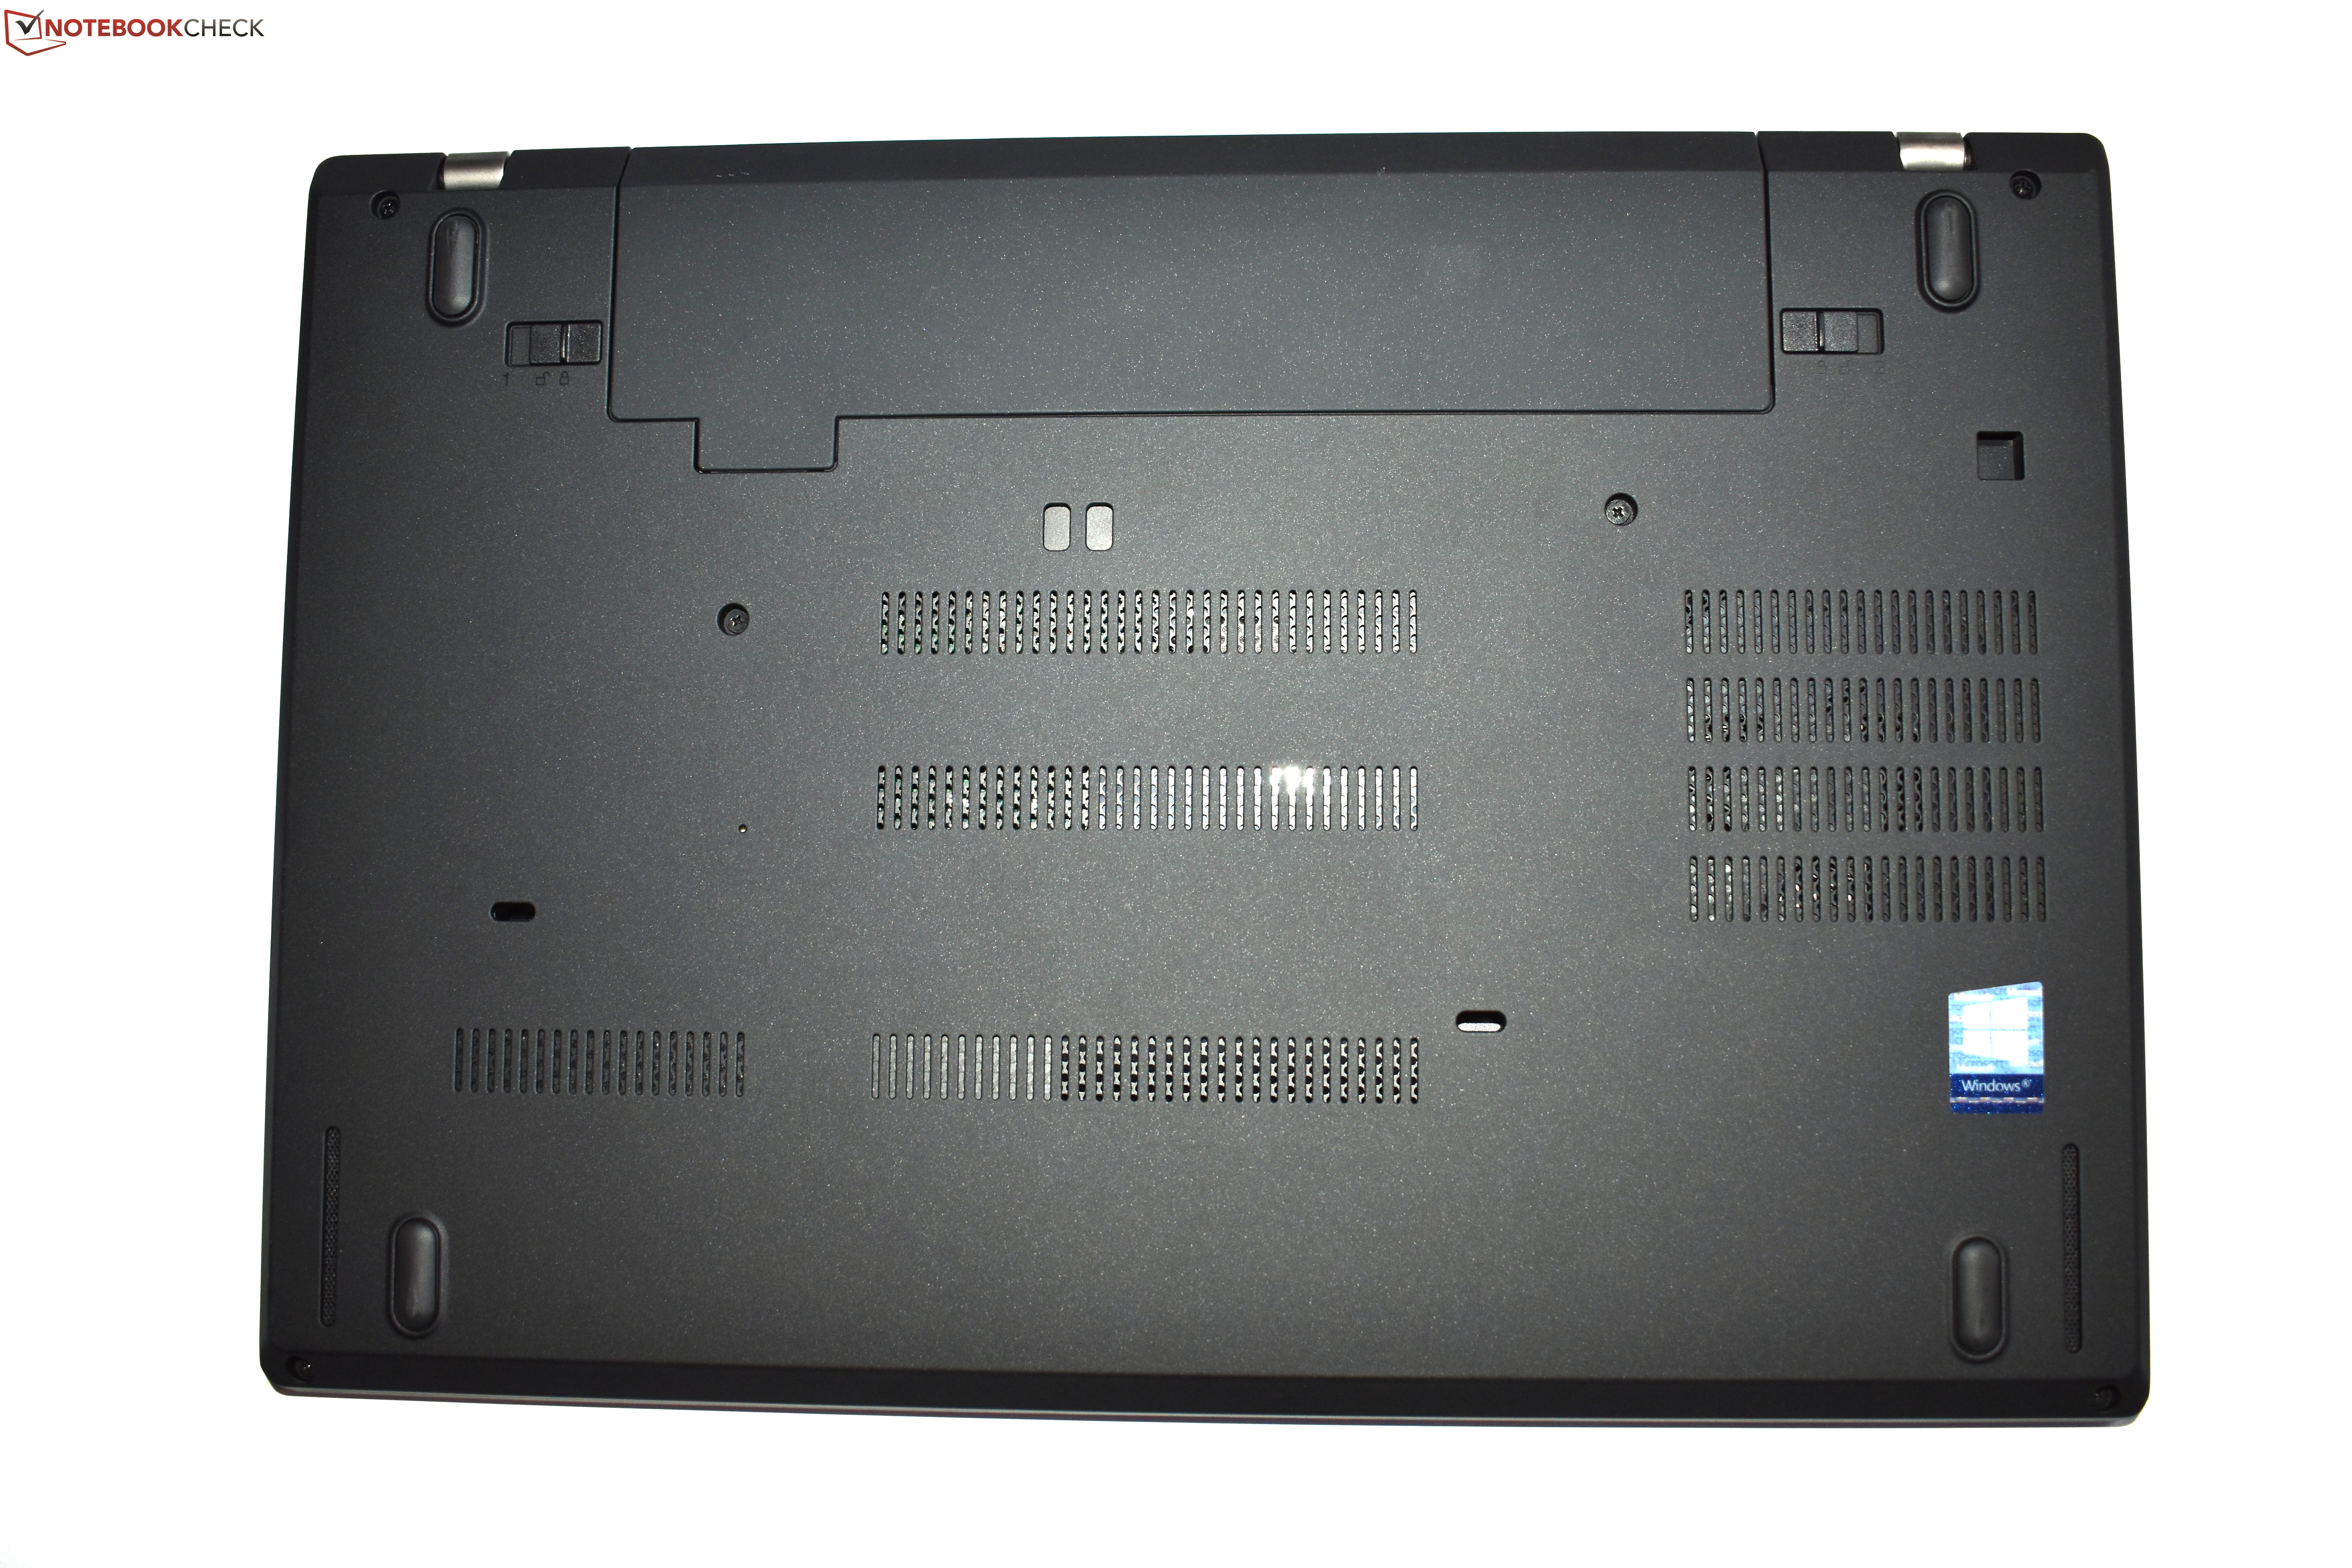 Lenovo Thinkpad A485 Ryzen 5 Pro Laptop Review Rj45 Connectors Also Telephone Phone Line Wiring Diagram Further Venn Full Resolution